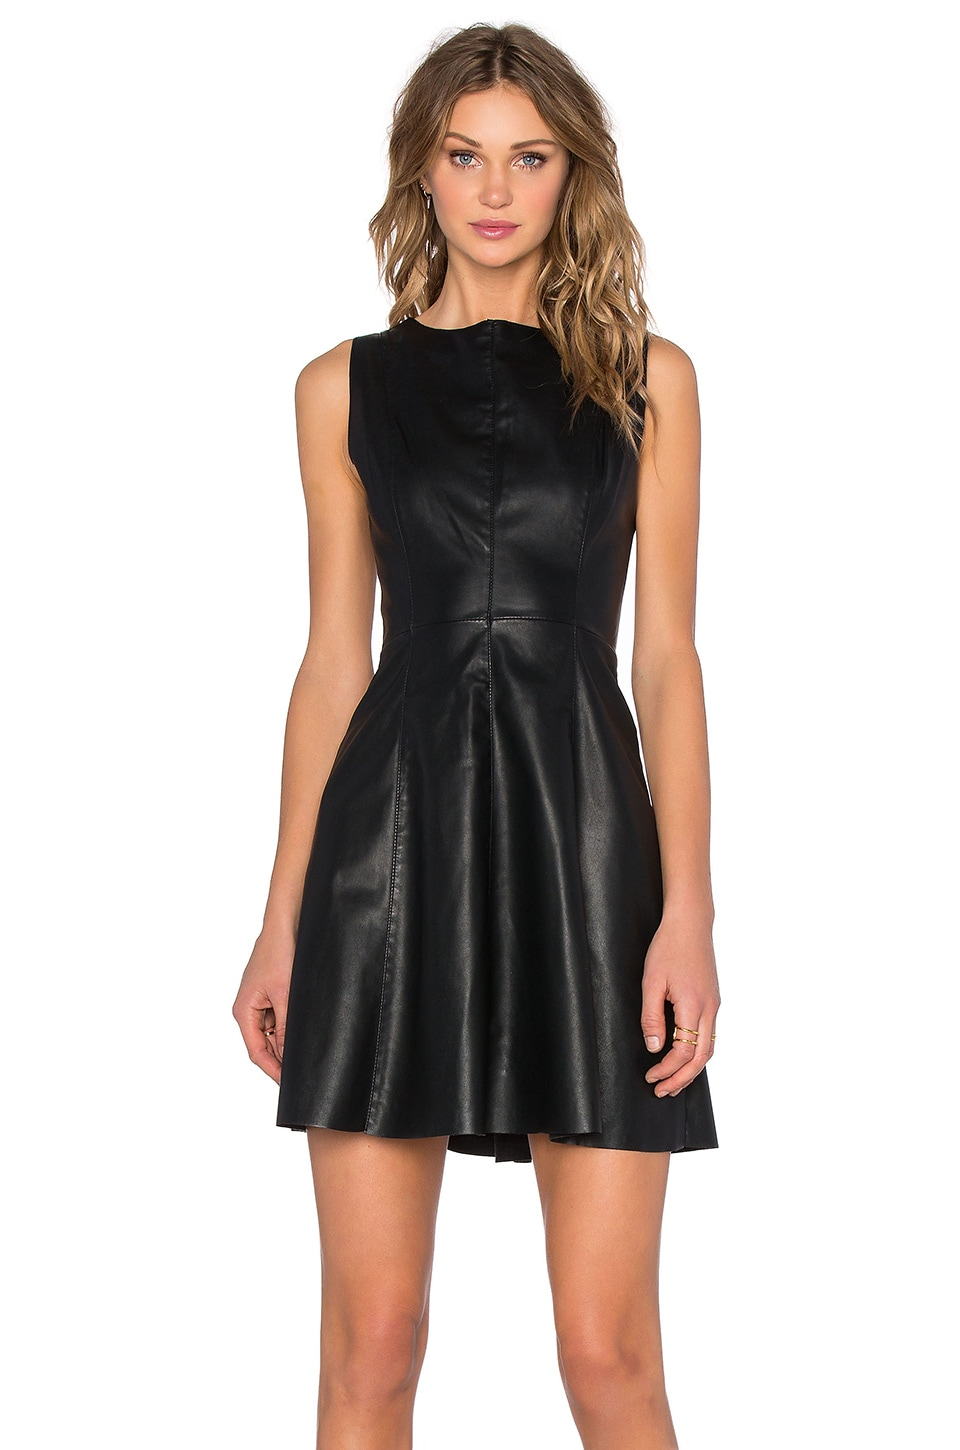 BB Dakota April Dress in Black | REVOLVE